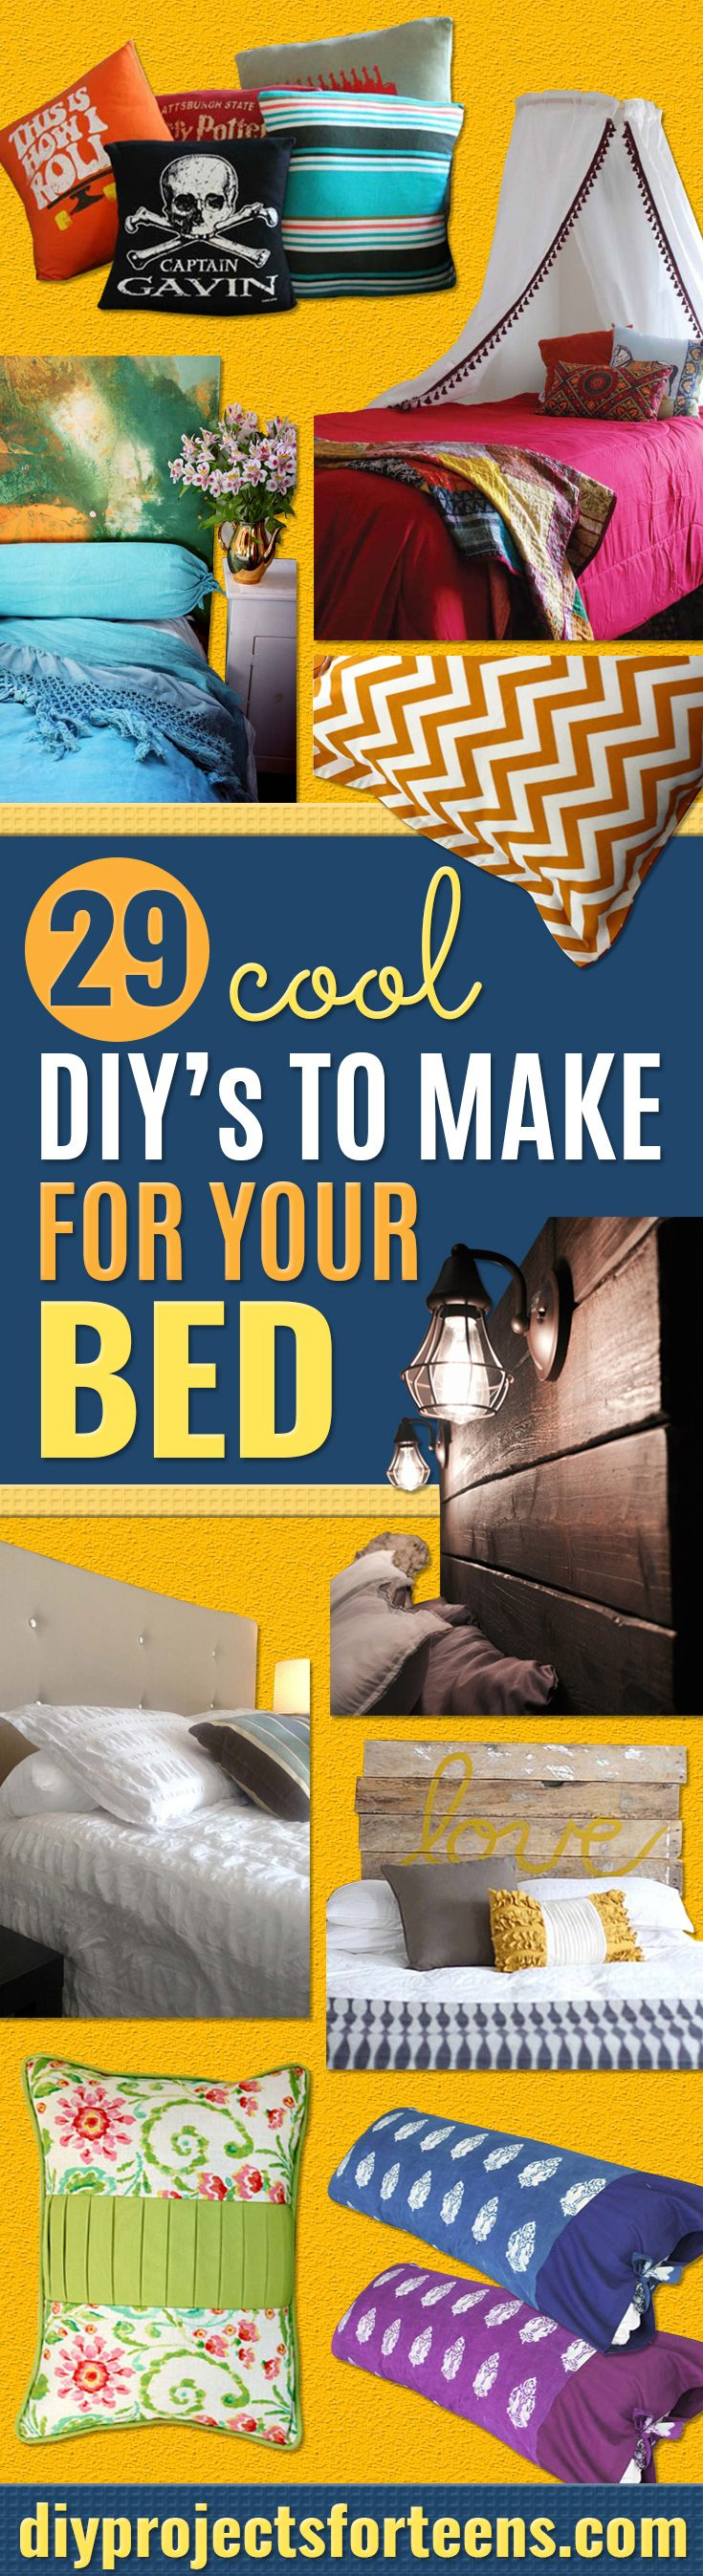 Cool DIY Ideas for Your Bed - Fun No Sew Bedding, Pillows, Blankets, Sewing Projects for Home Decor and Crafts to Make Your Bedroom Awesome - Easy Step by Step Tutorials for Making A T-Shirt Pillow, Knit Throws, Fuzzy and Furry Warm Blankets and Handmade DYI Bedding, Sheets, Bedskirts and Shams